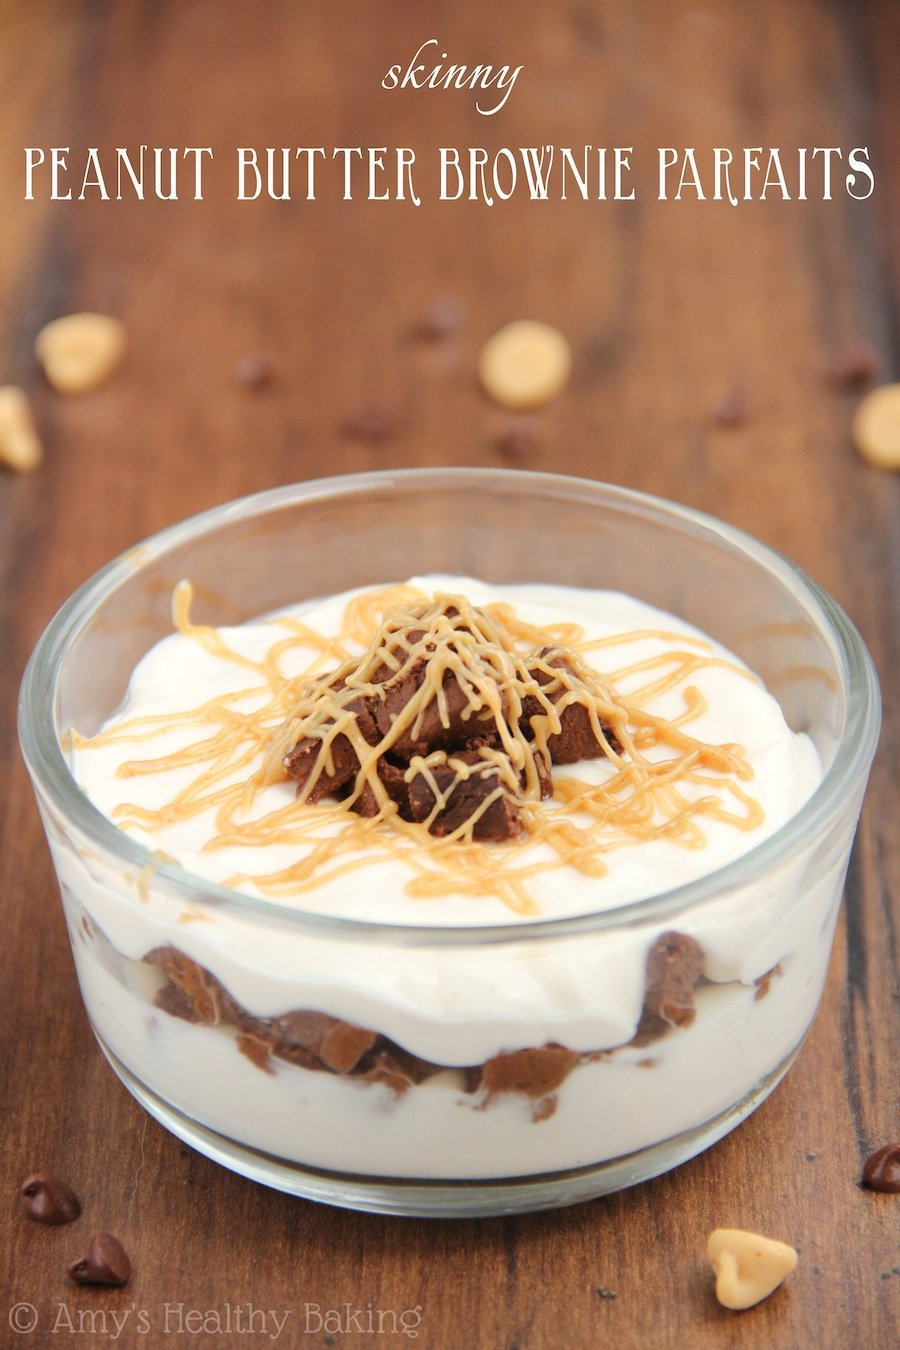 Skinny Peanut Butter Brownie Parfaits